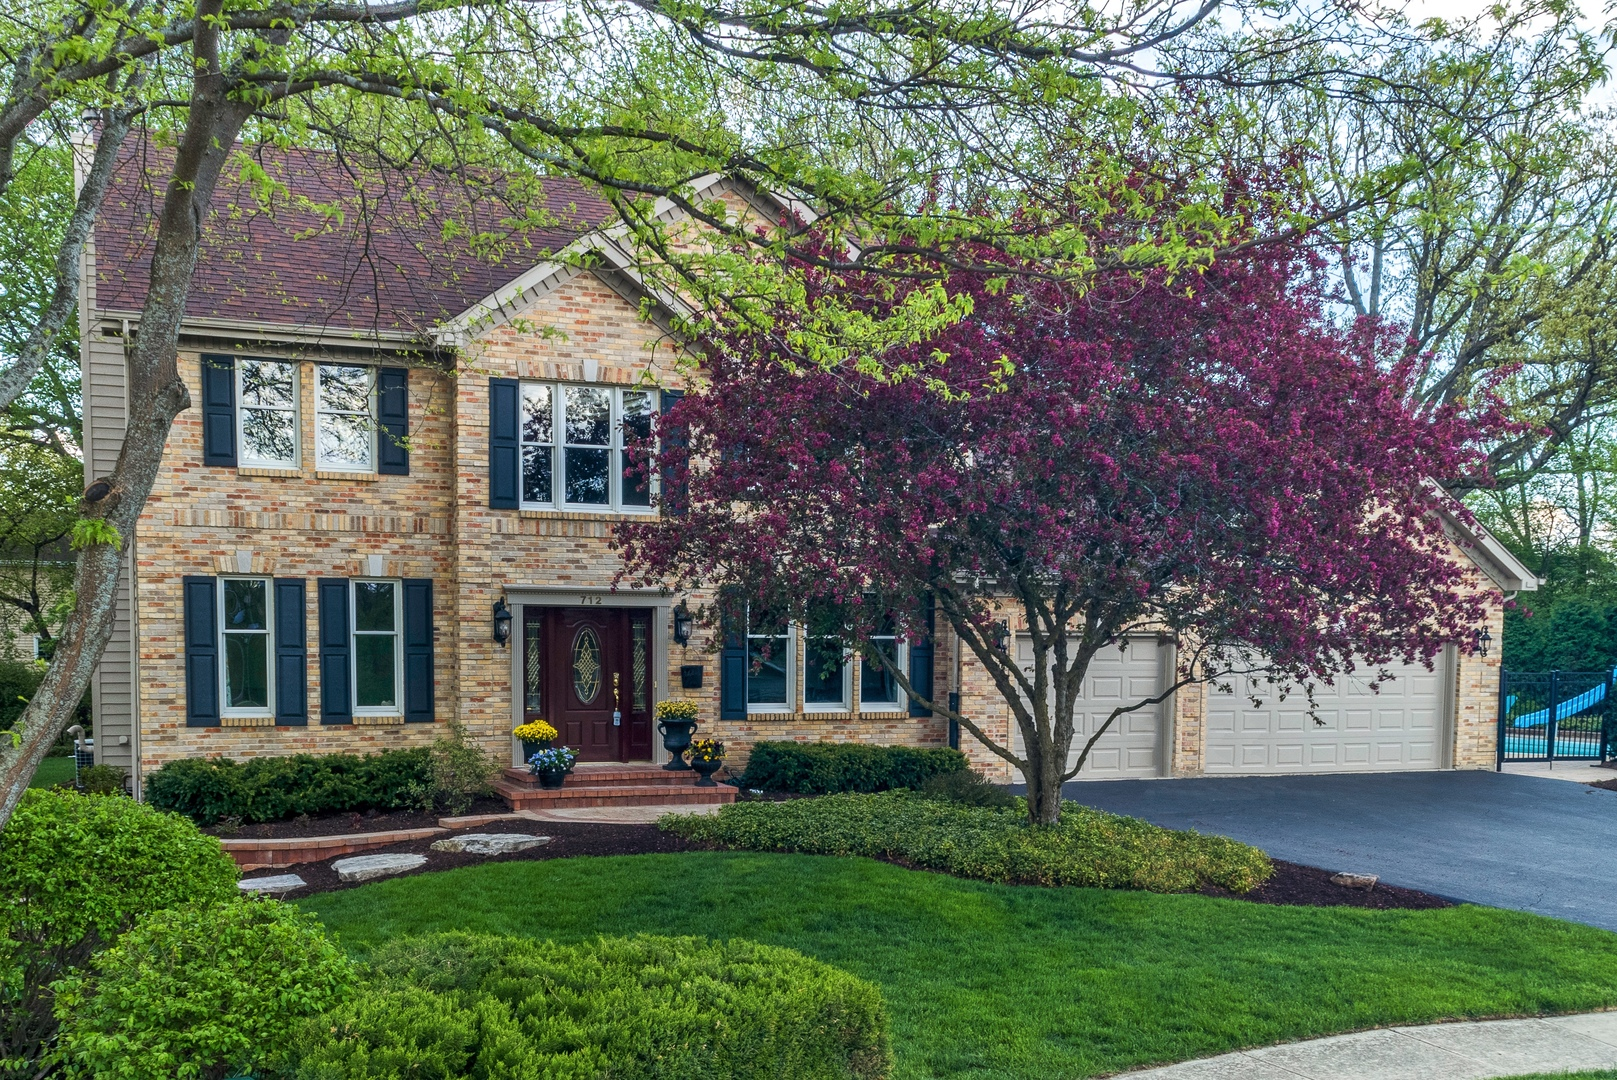 712 Marshall Court, Batavia in Kane County, IL 60510 Home for Sale